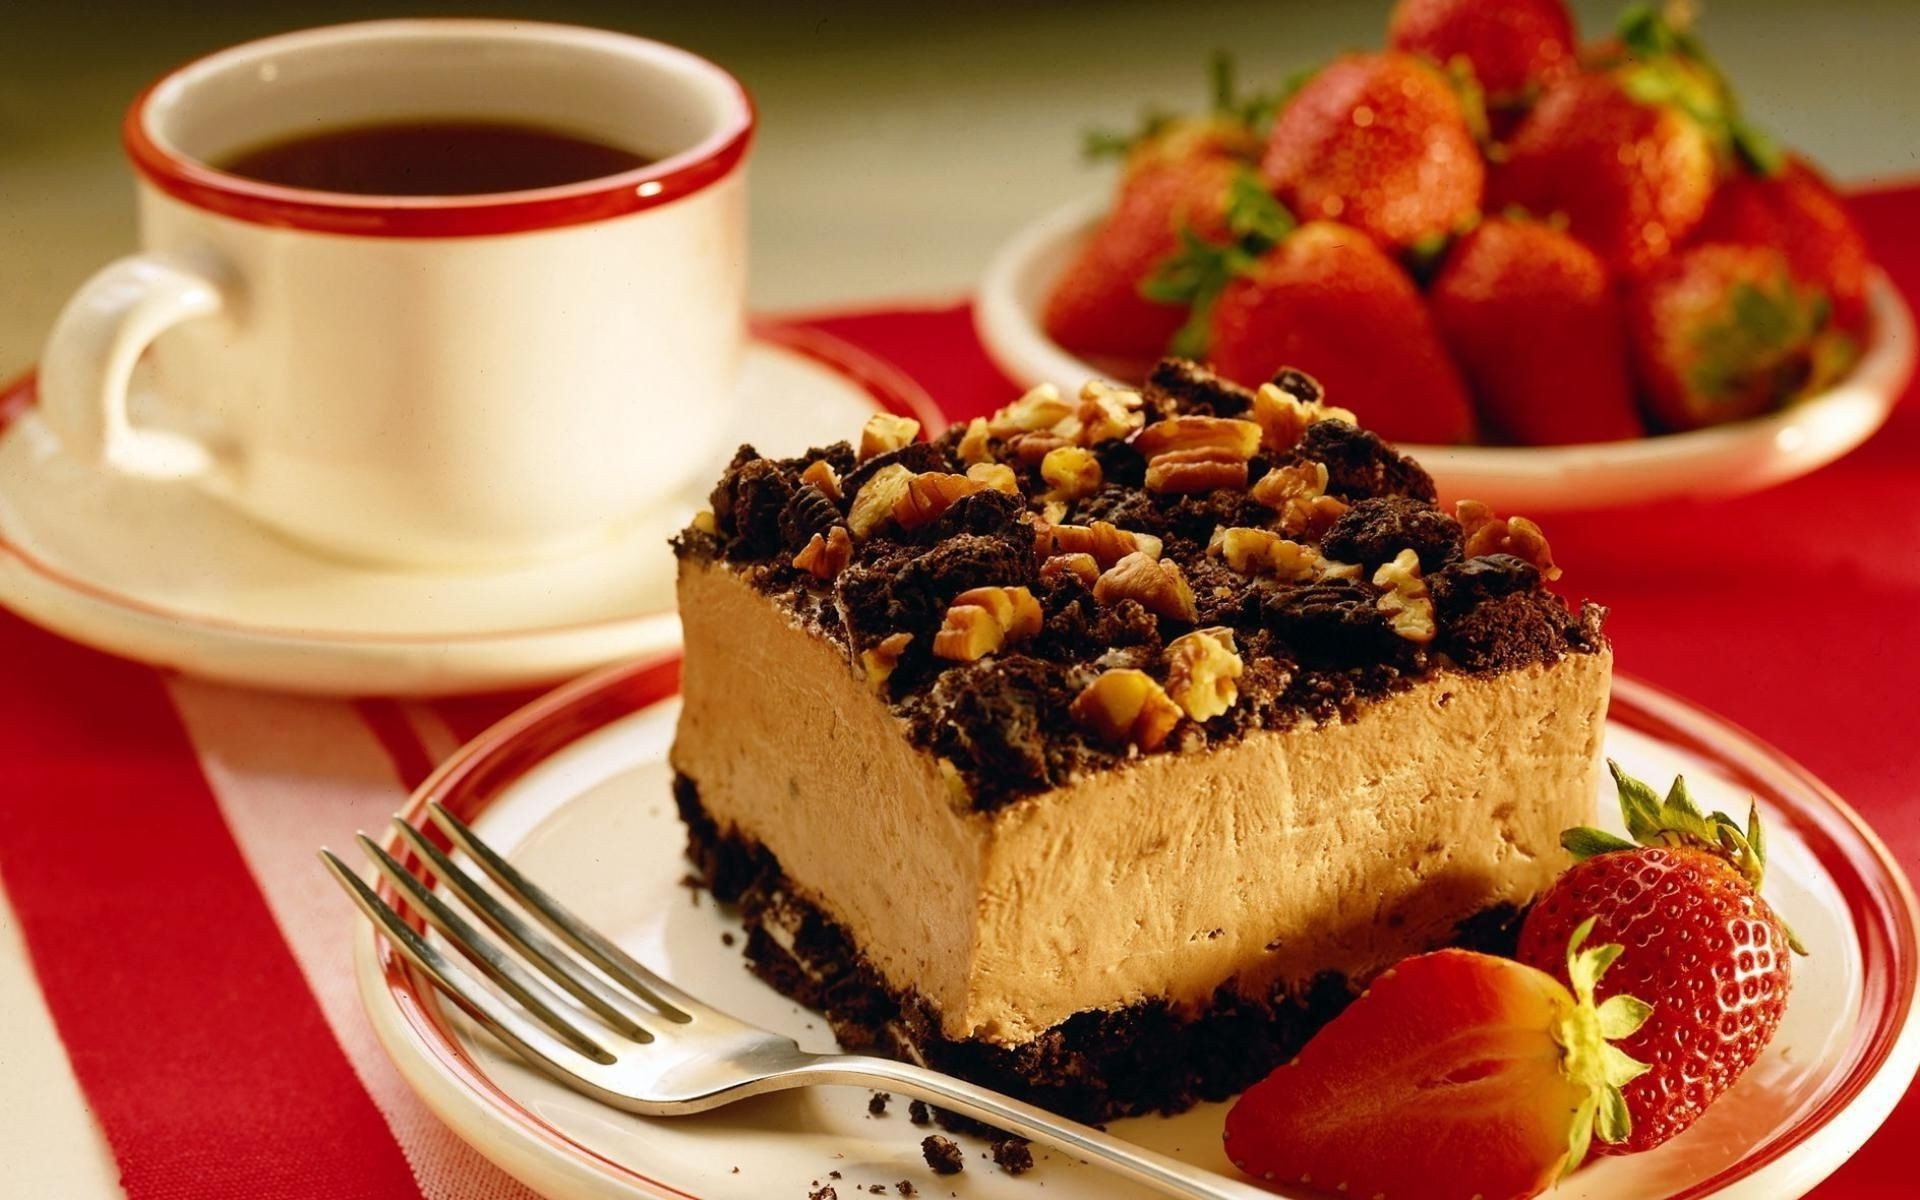 desserts chocolate cake delicious food sweet plate cream pastry fruit sugar pie homemade berry coffee breakfast indulgence slice baking mousse